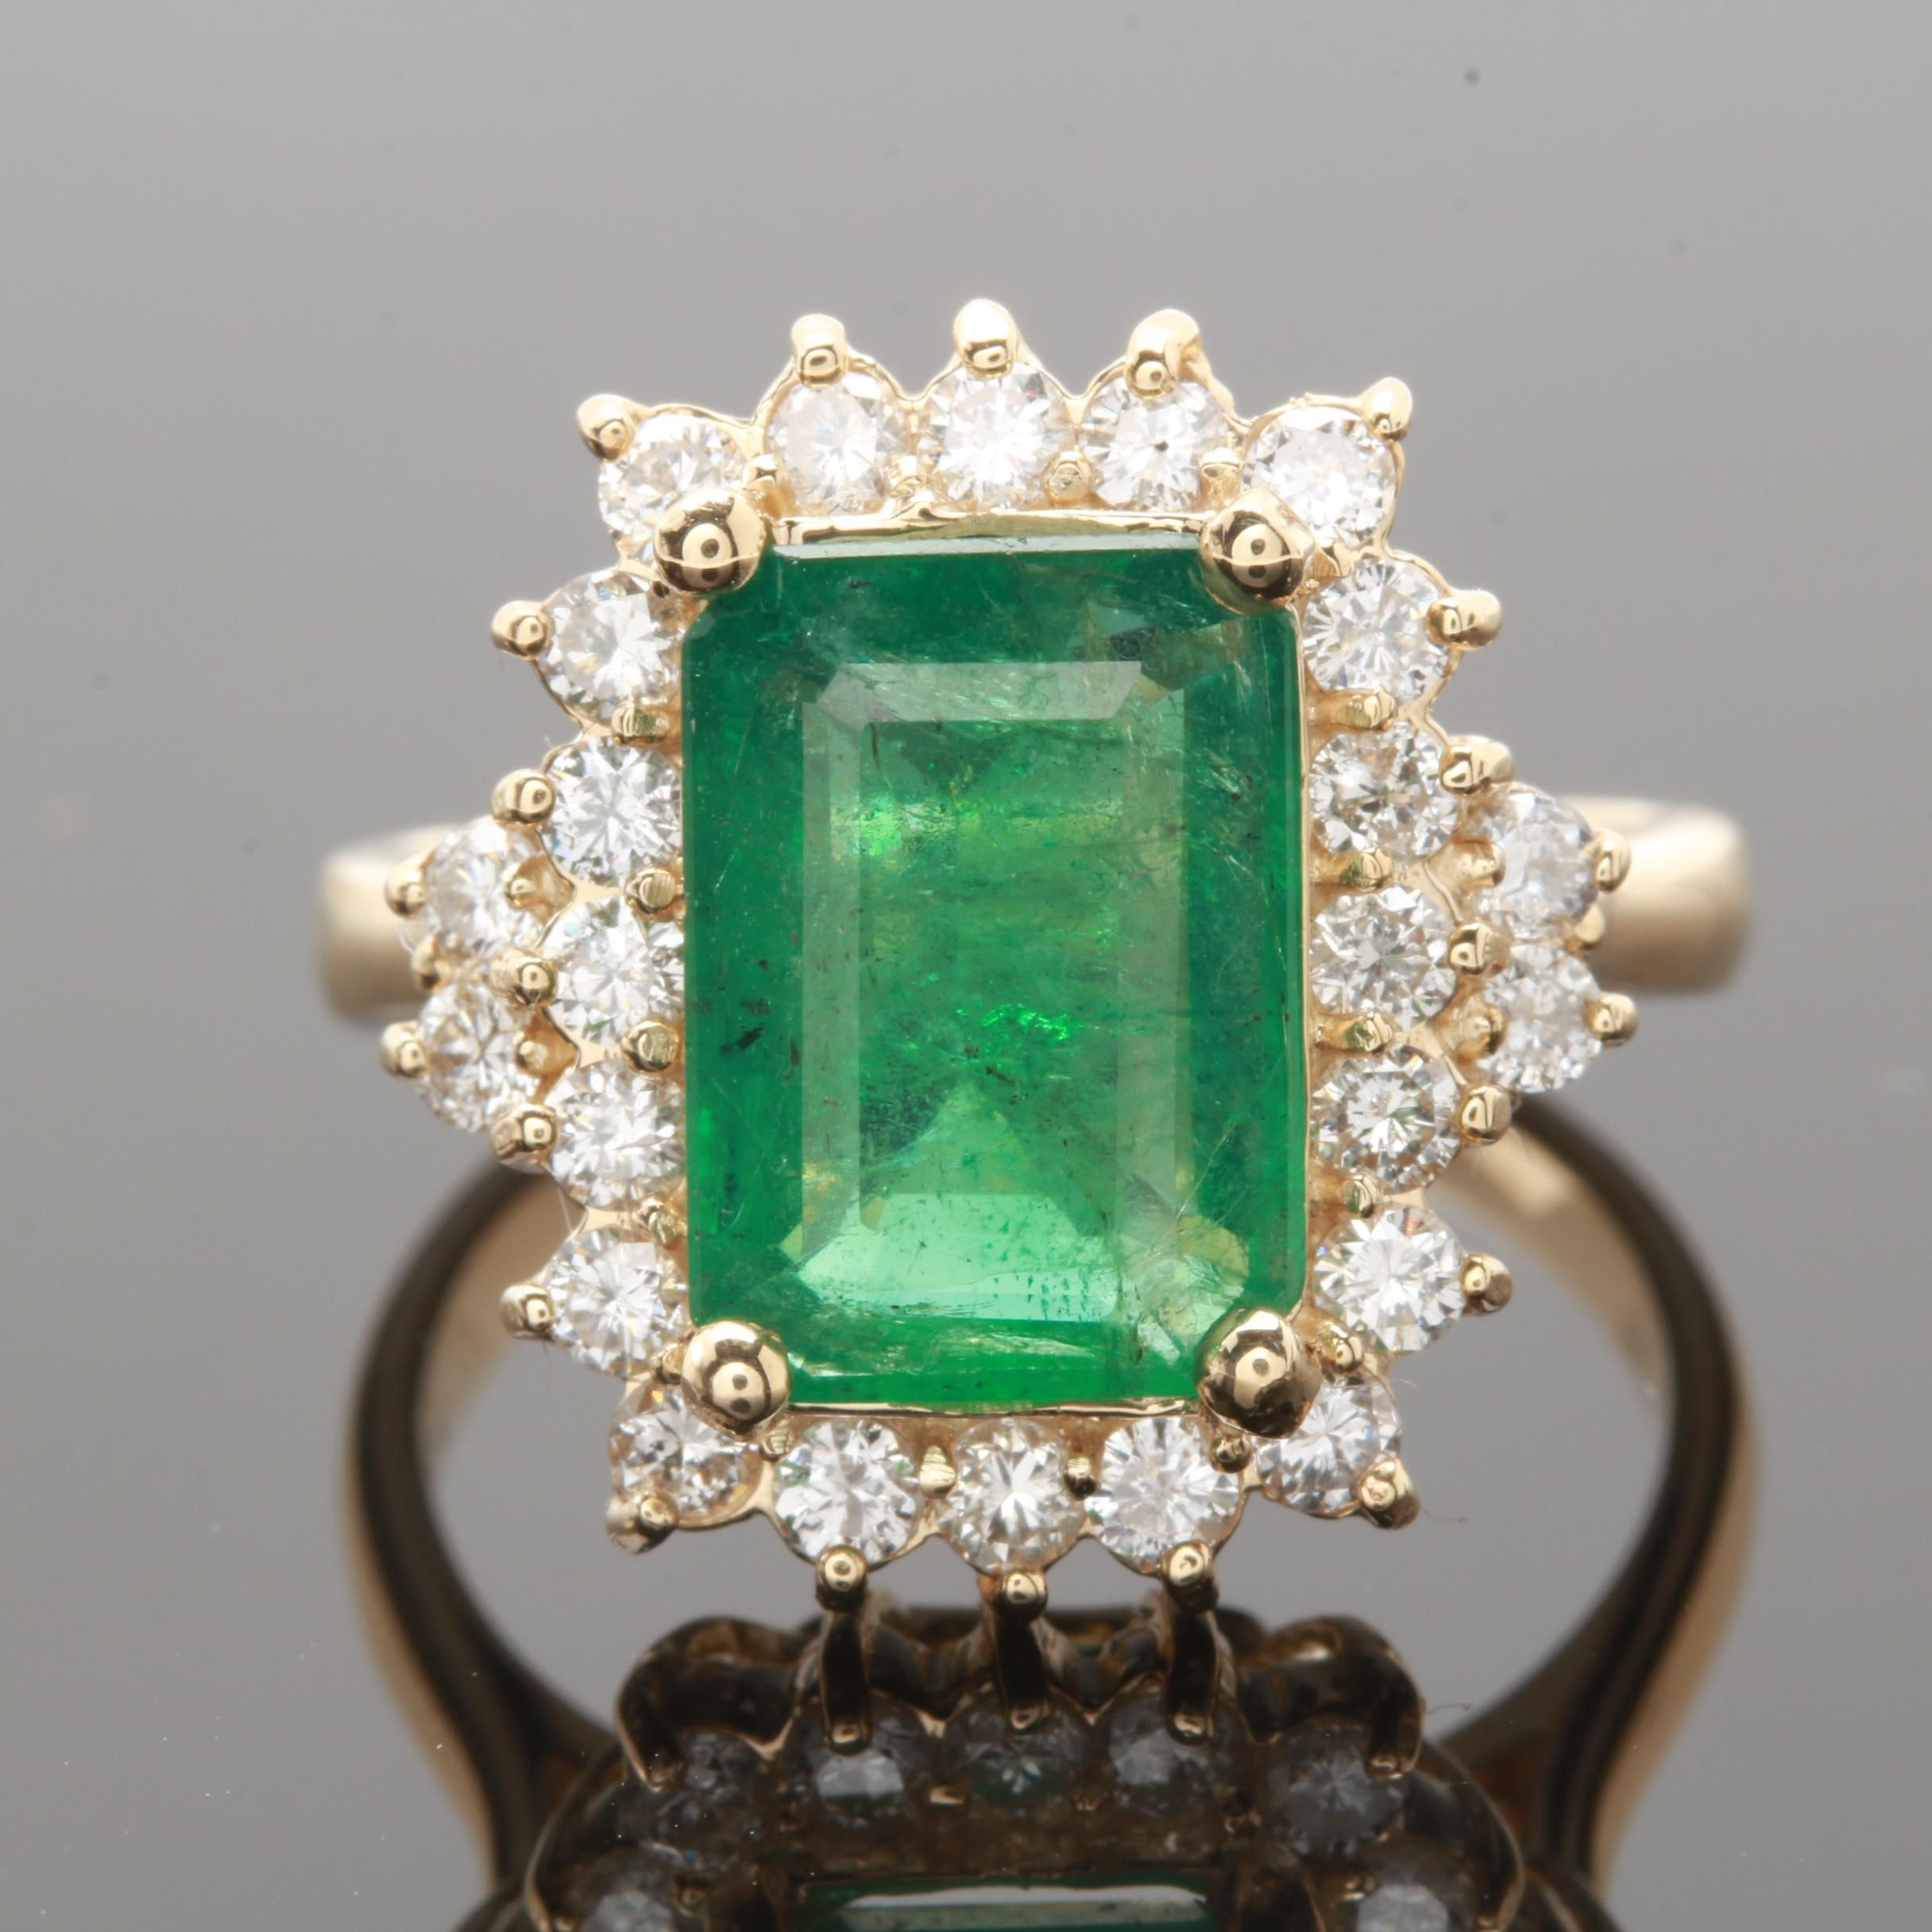 14K Yellow Gold 2.55 CT Emerald and Diamond Ring